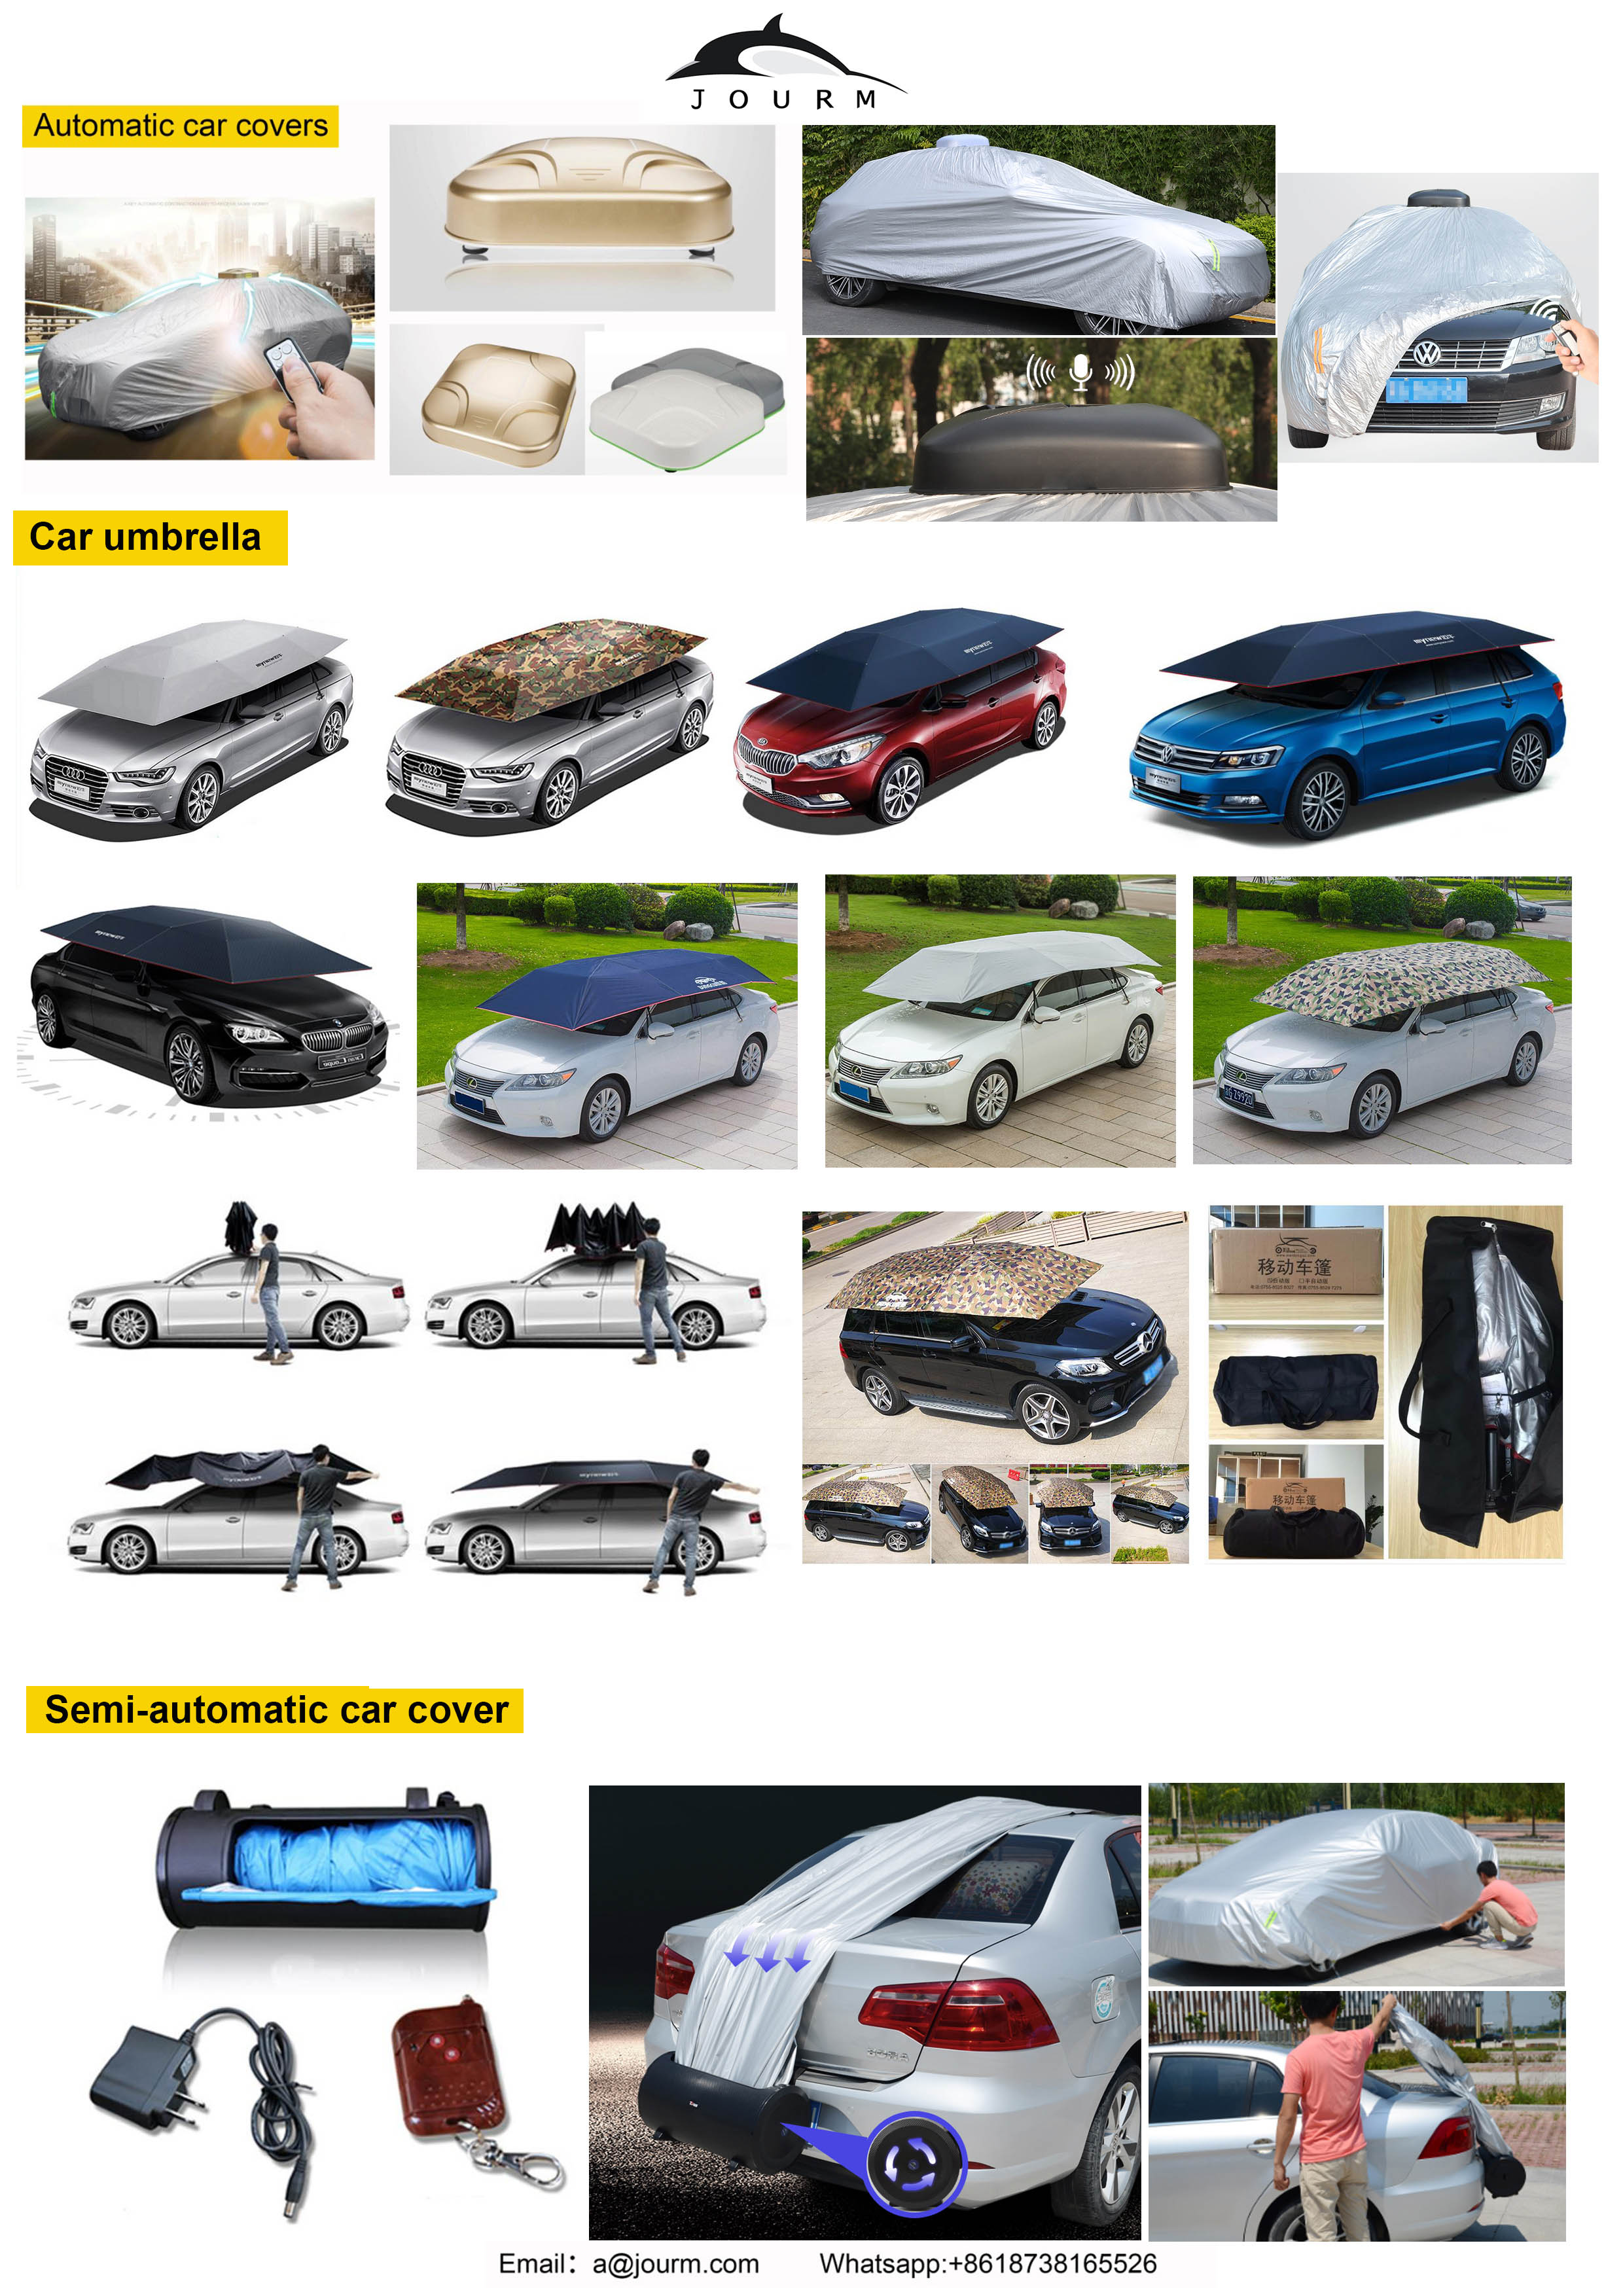 Thicken inflatable auto car cover snowproof retractable thick anti hail waterproof automatic electrical sun shade umbrella cover